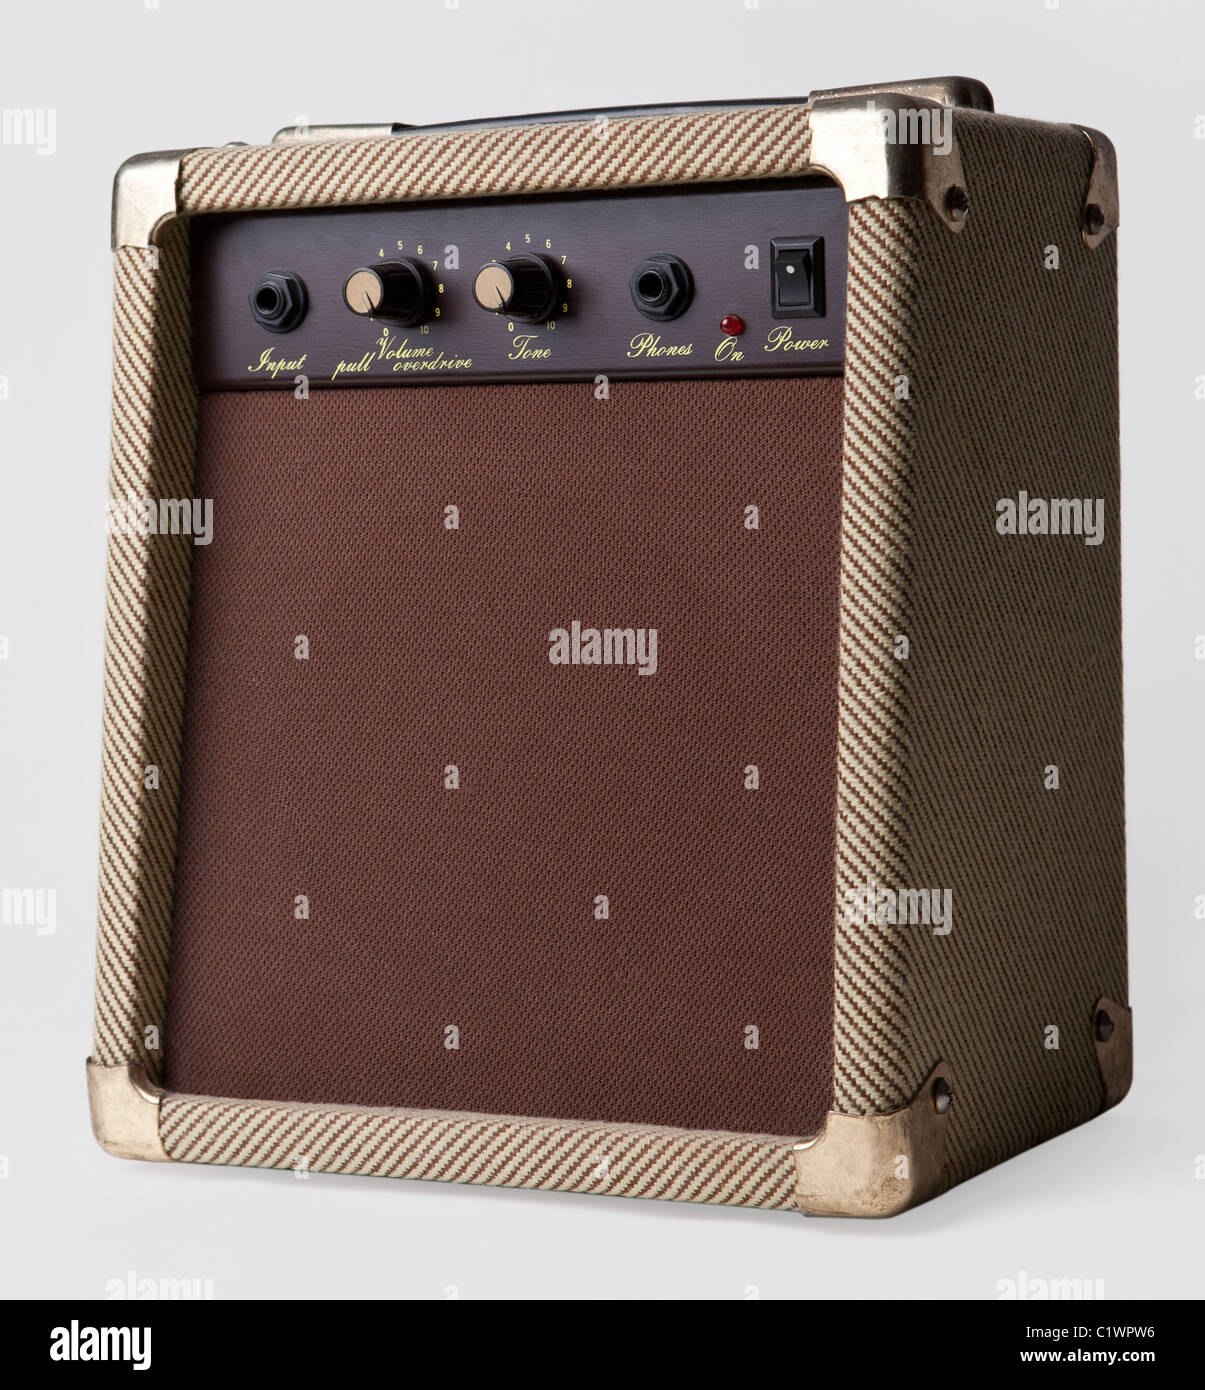 Guitar Amplifier isolated on a white background Stock Photo